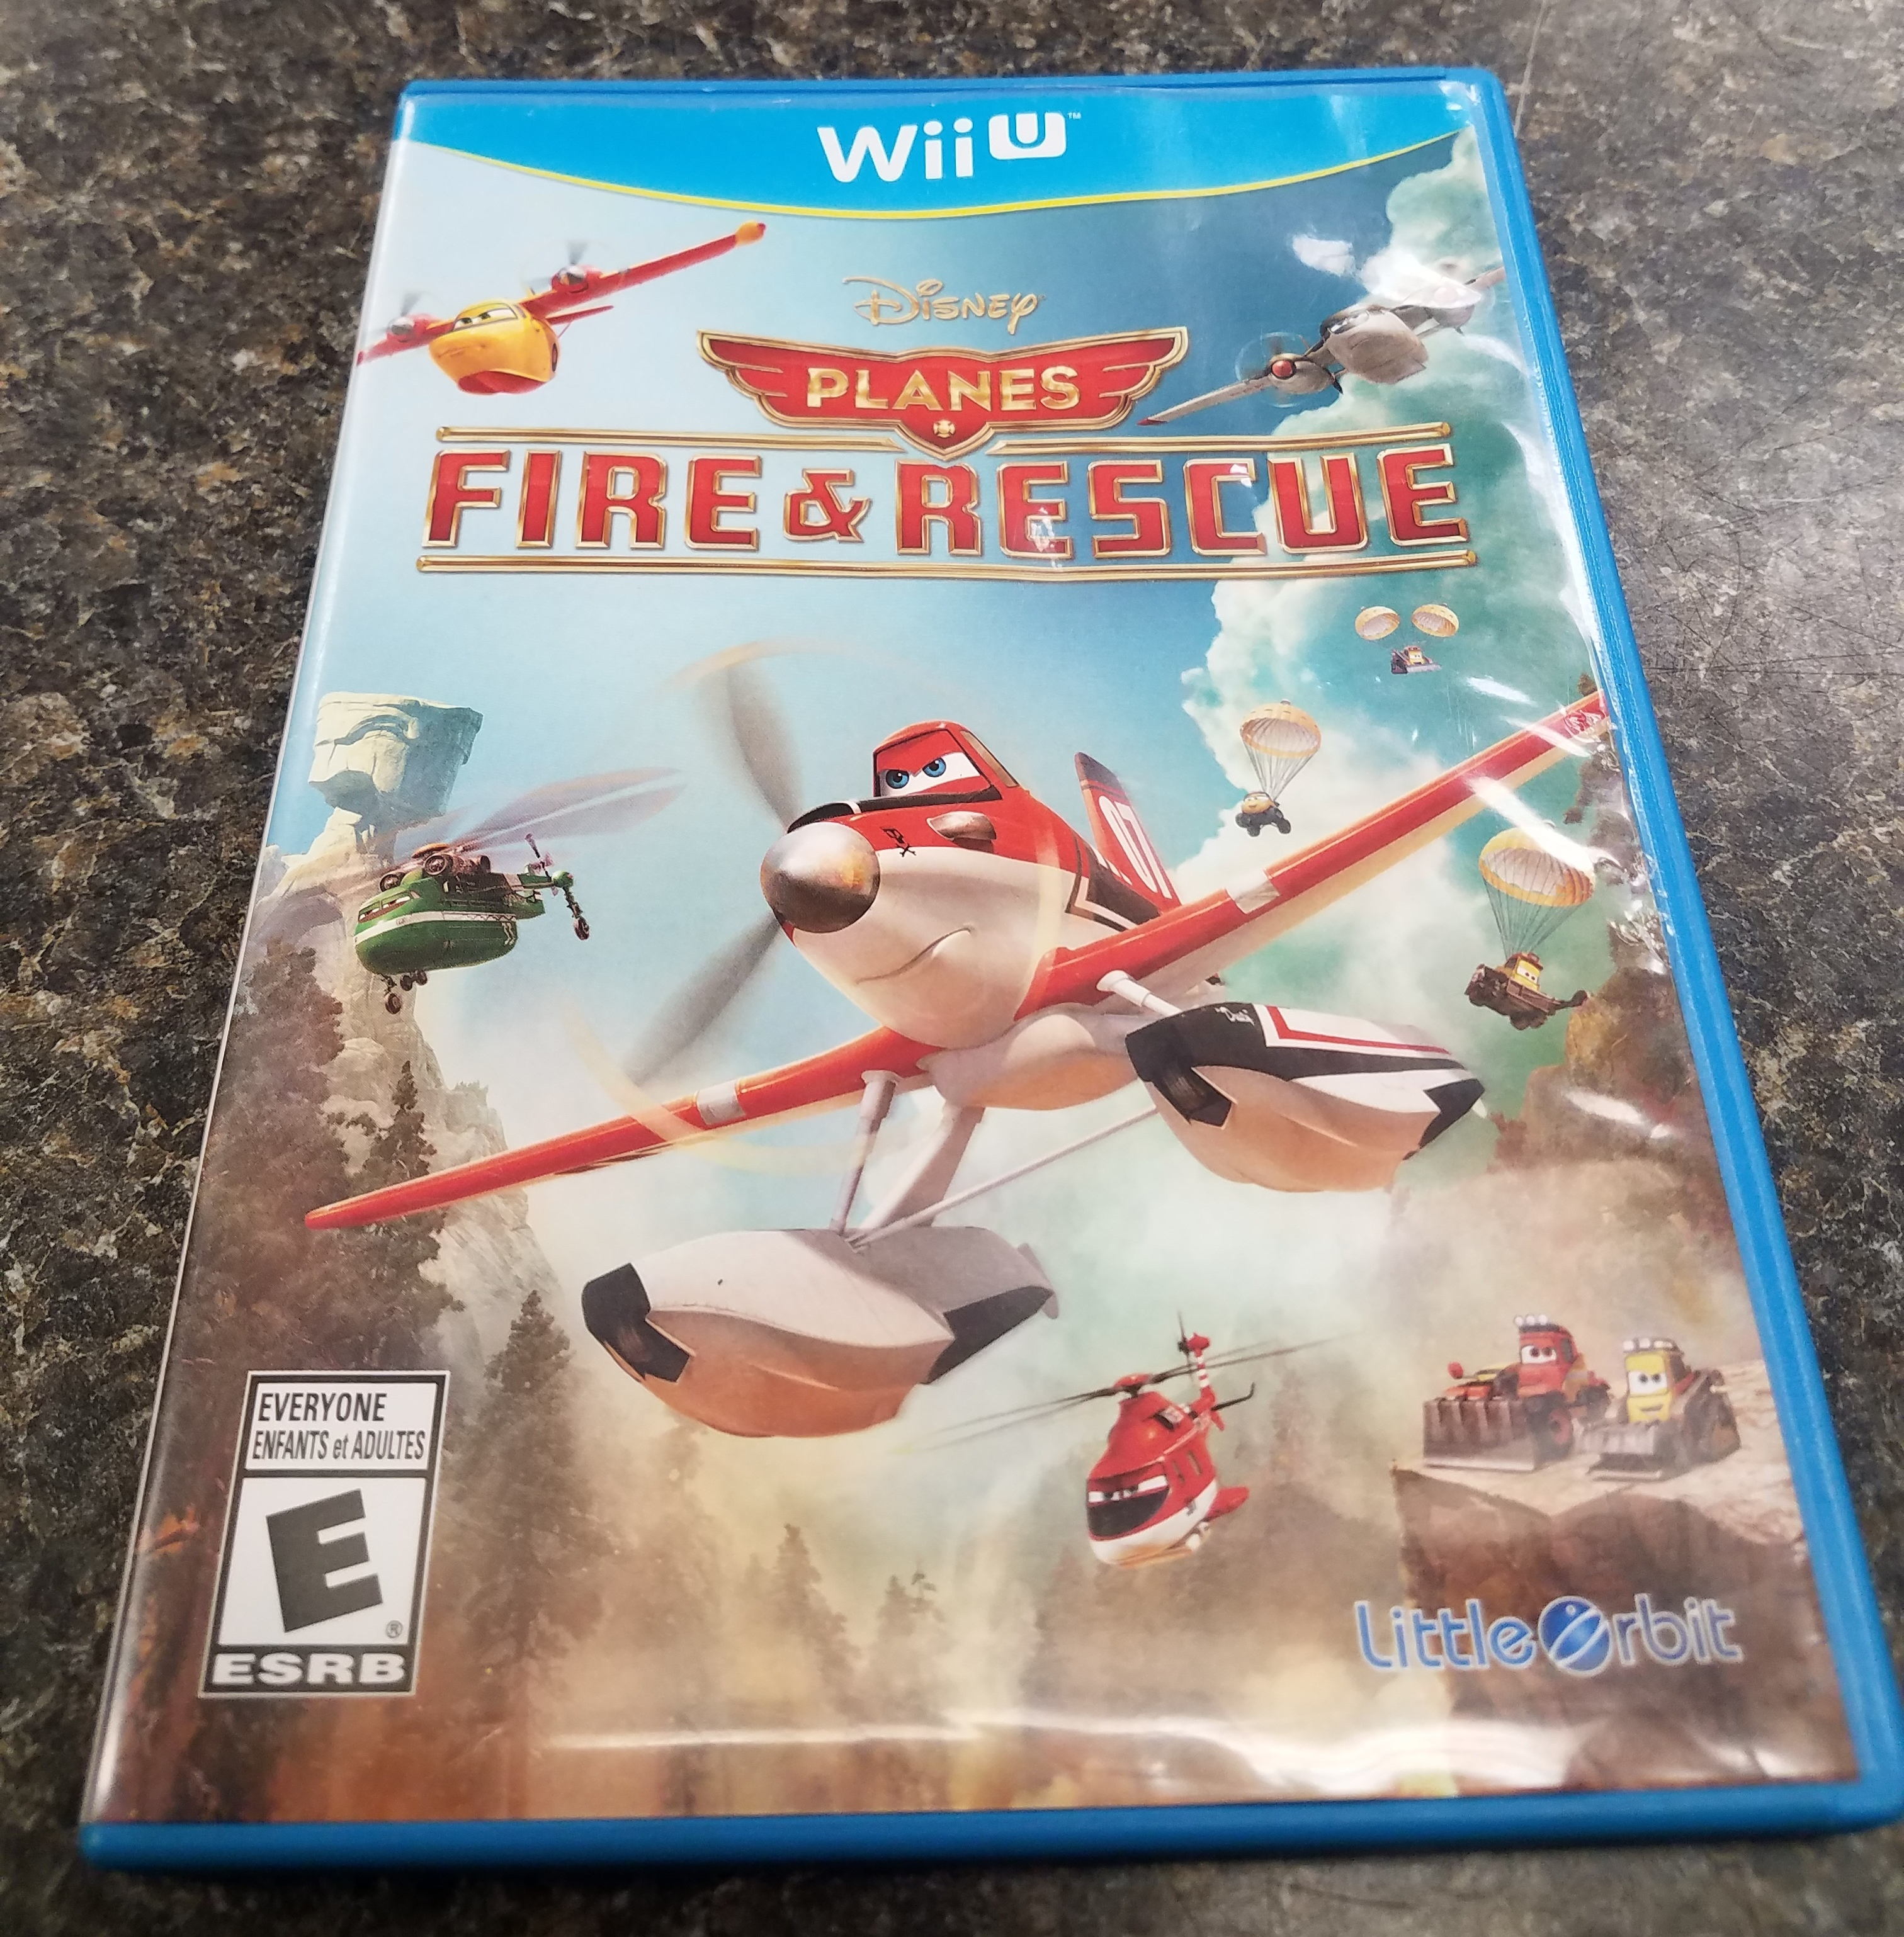 PLANES FIRE AND RESCUE - WII U GAME